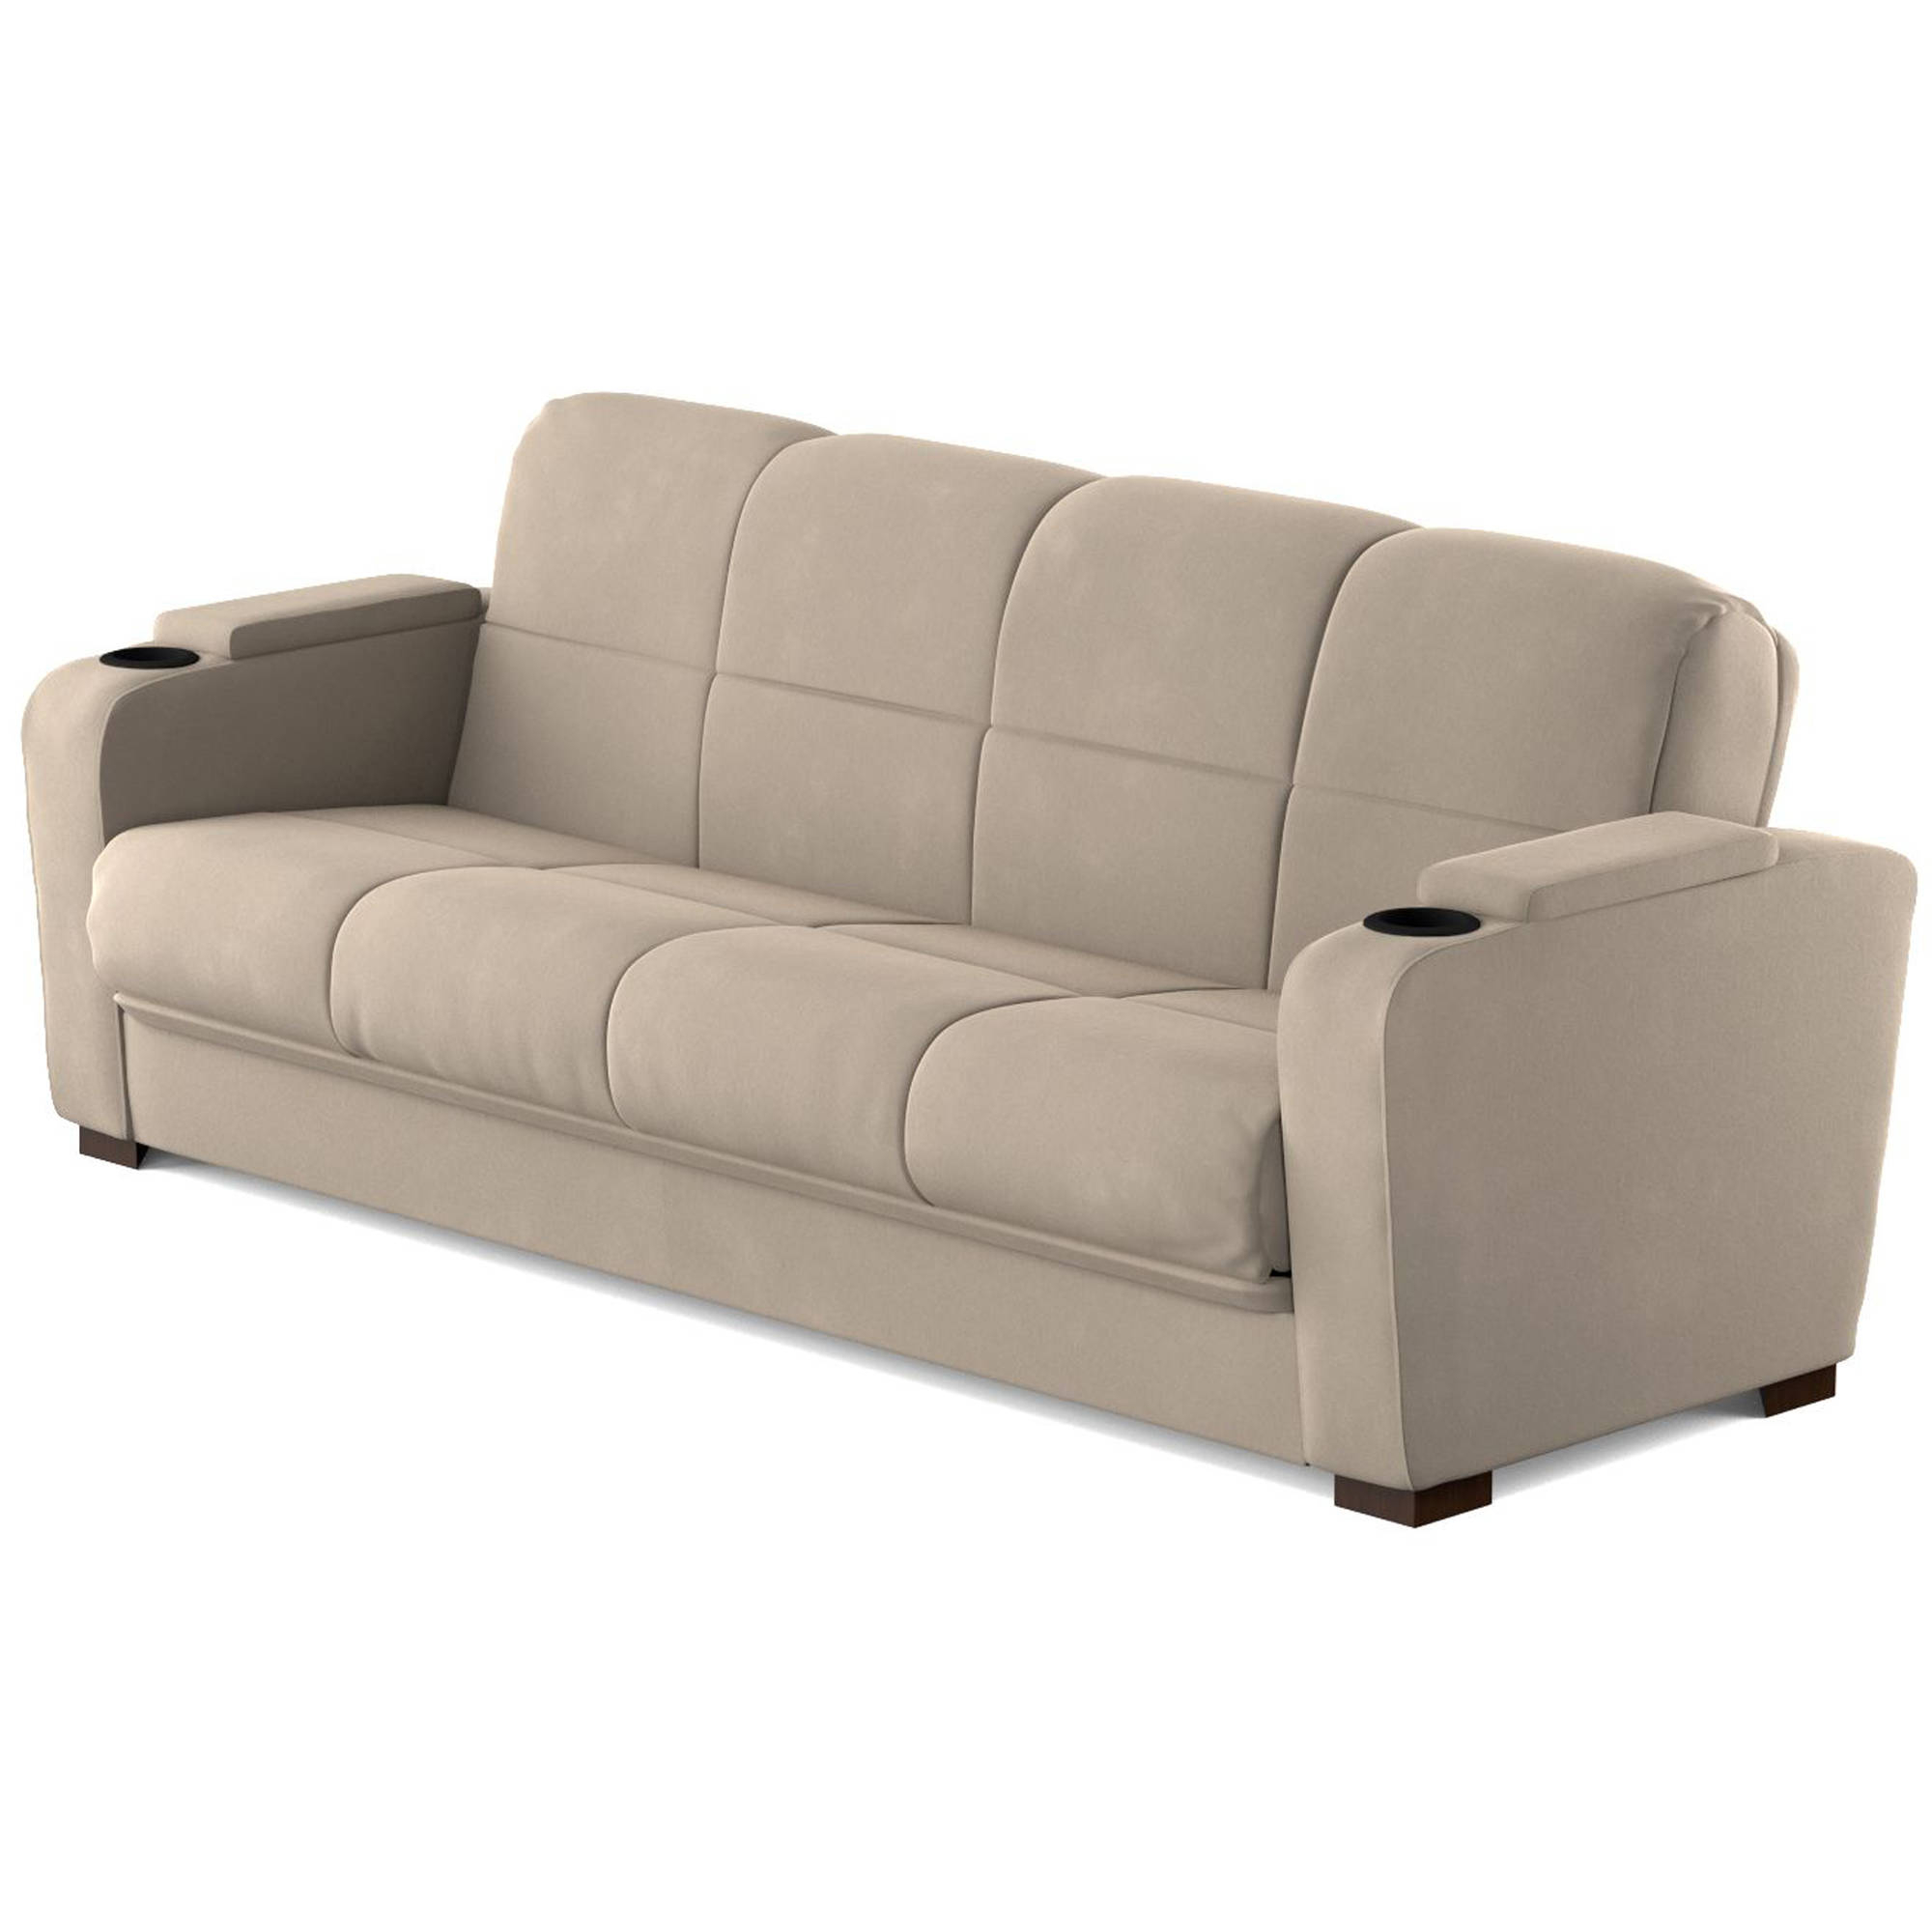 Celine Sectional Futon Sofas With Storage Reclining Couch Regarding Well Liked Mainstays Tyler Futon With Storage Sofa Sleeper Bed (View 5 of 20)